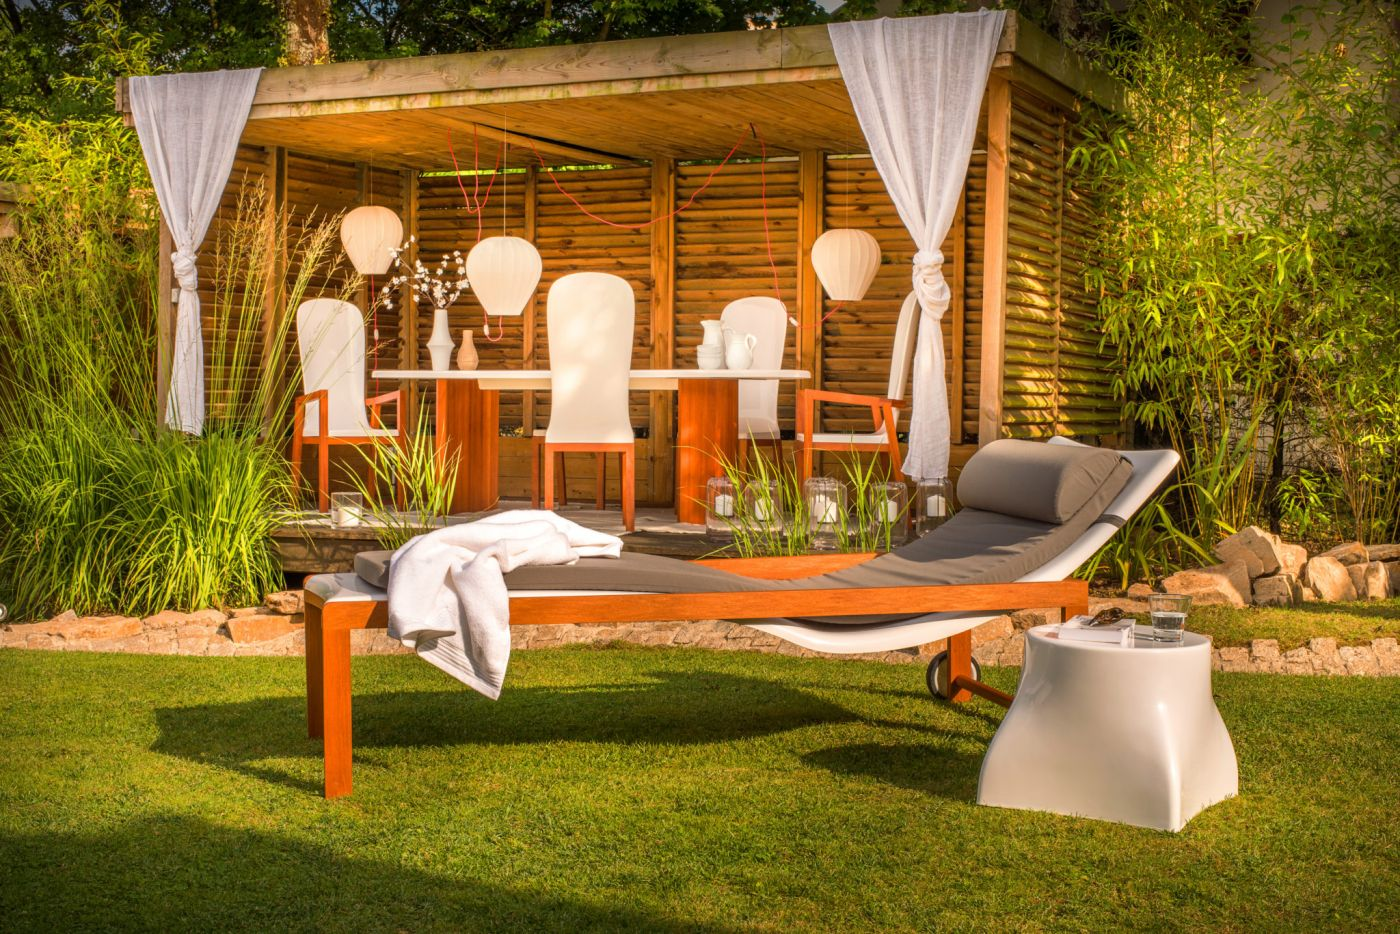 Salon De Jardin Made In France Mobilier Jardin Design Tables Chaises Bain De Soleil Art Mely